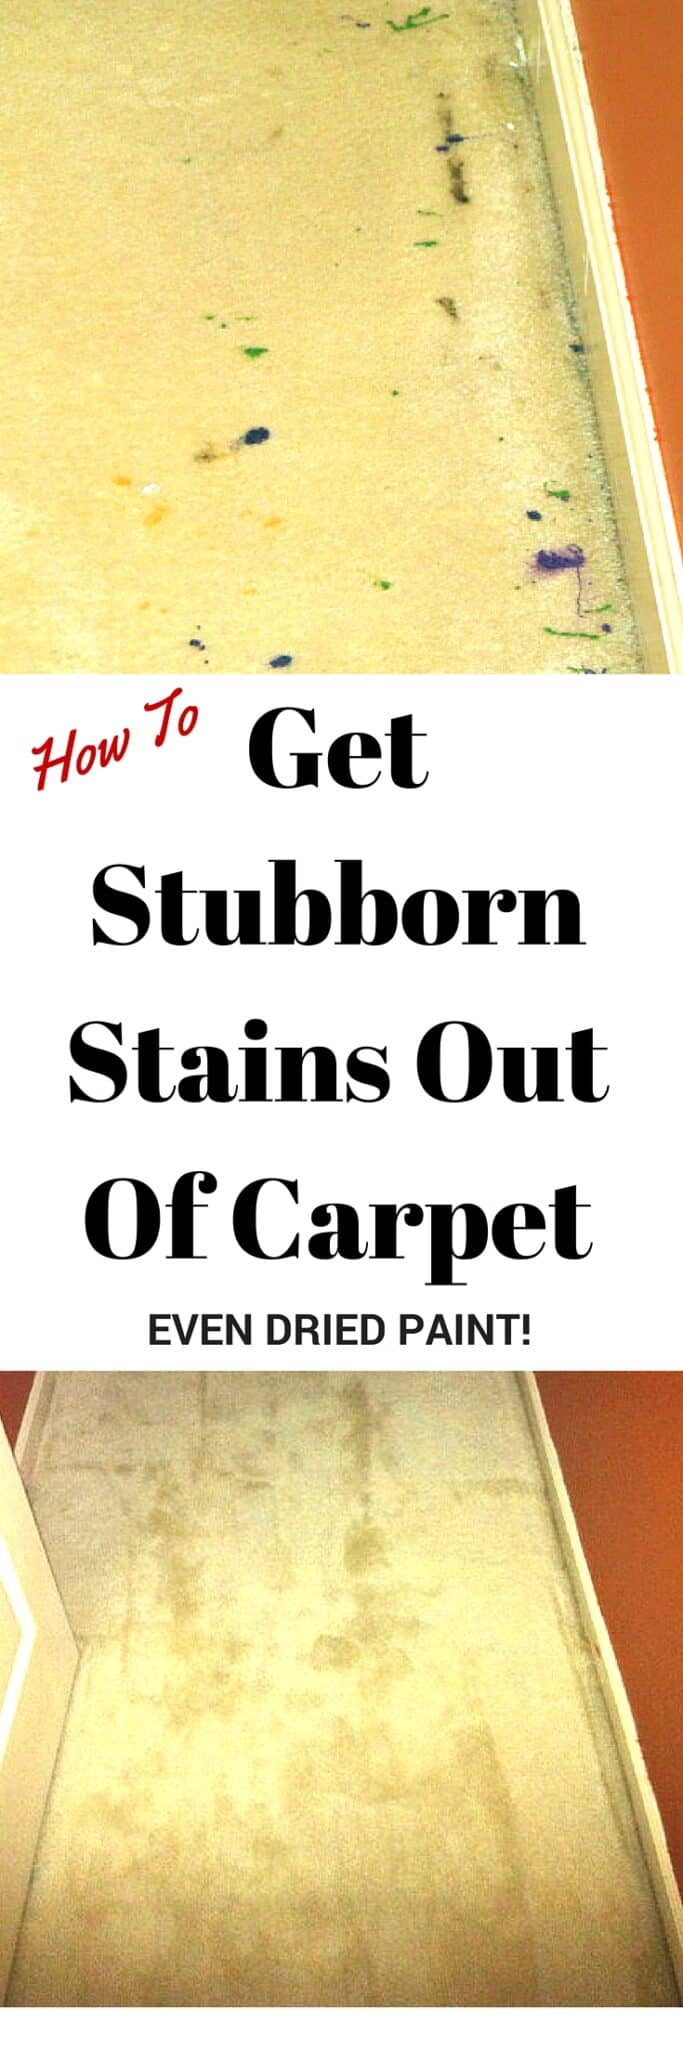 Pin How To Get Dried Paint Out Of Carpet